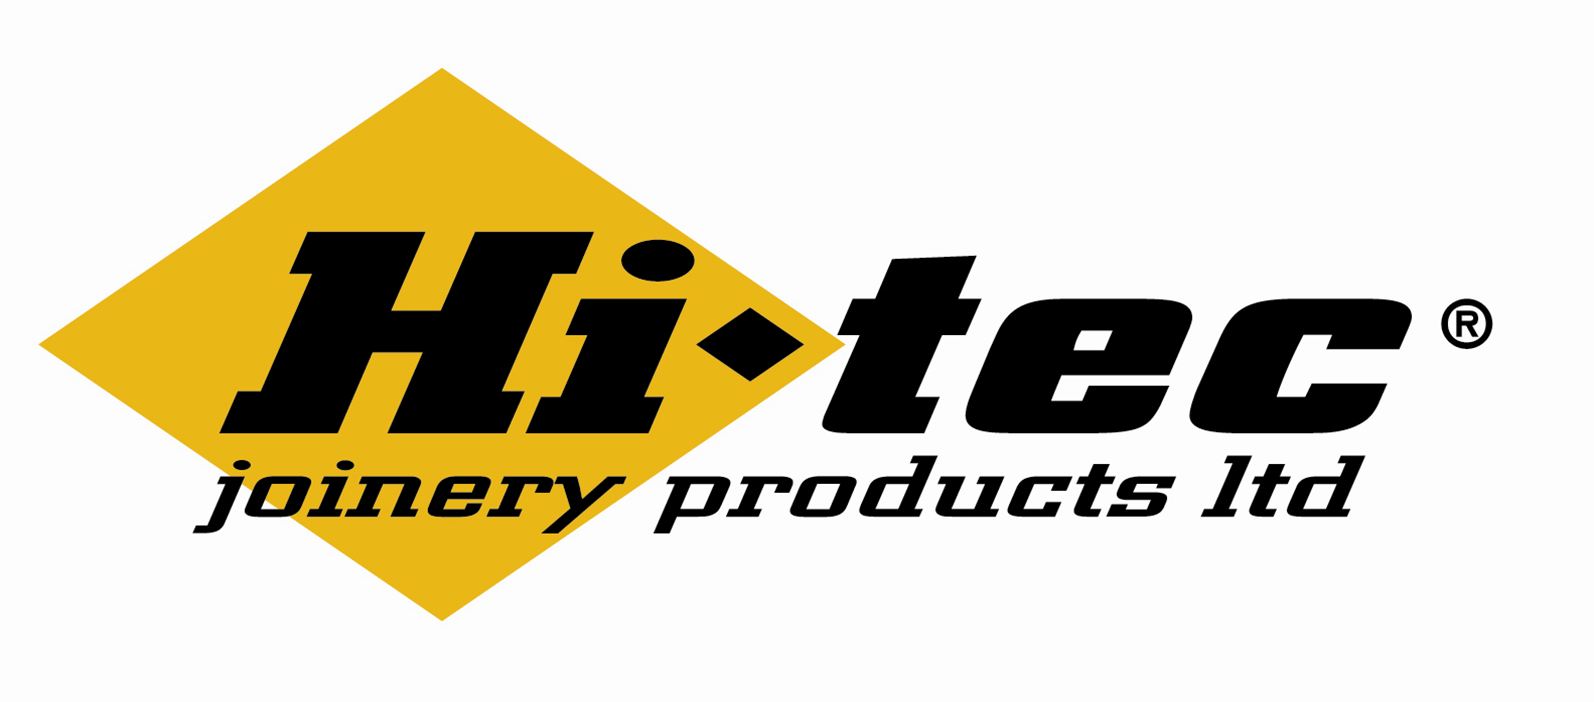 Hi-tec Joinery Products Ltd